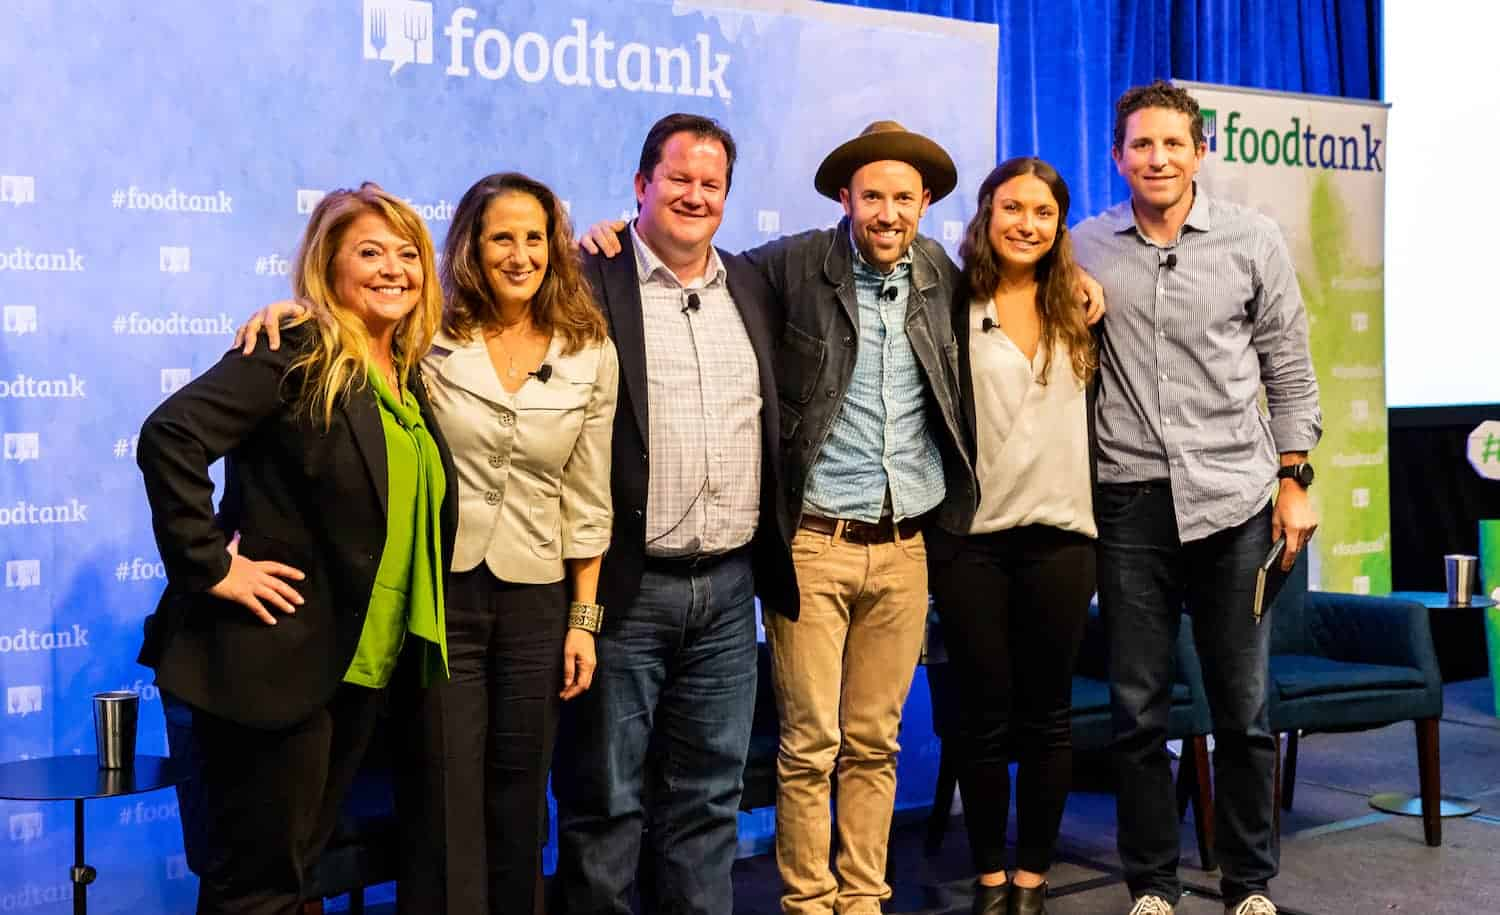 At the 2018 San Diego Food Tank Summit, experts take to the stage to discuss how science and technology can advance sustainable food systems.